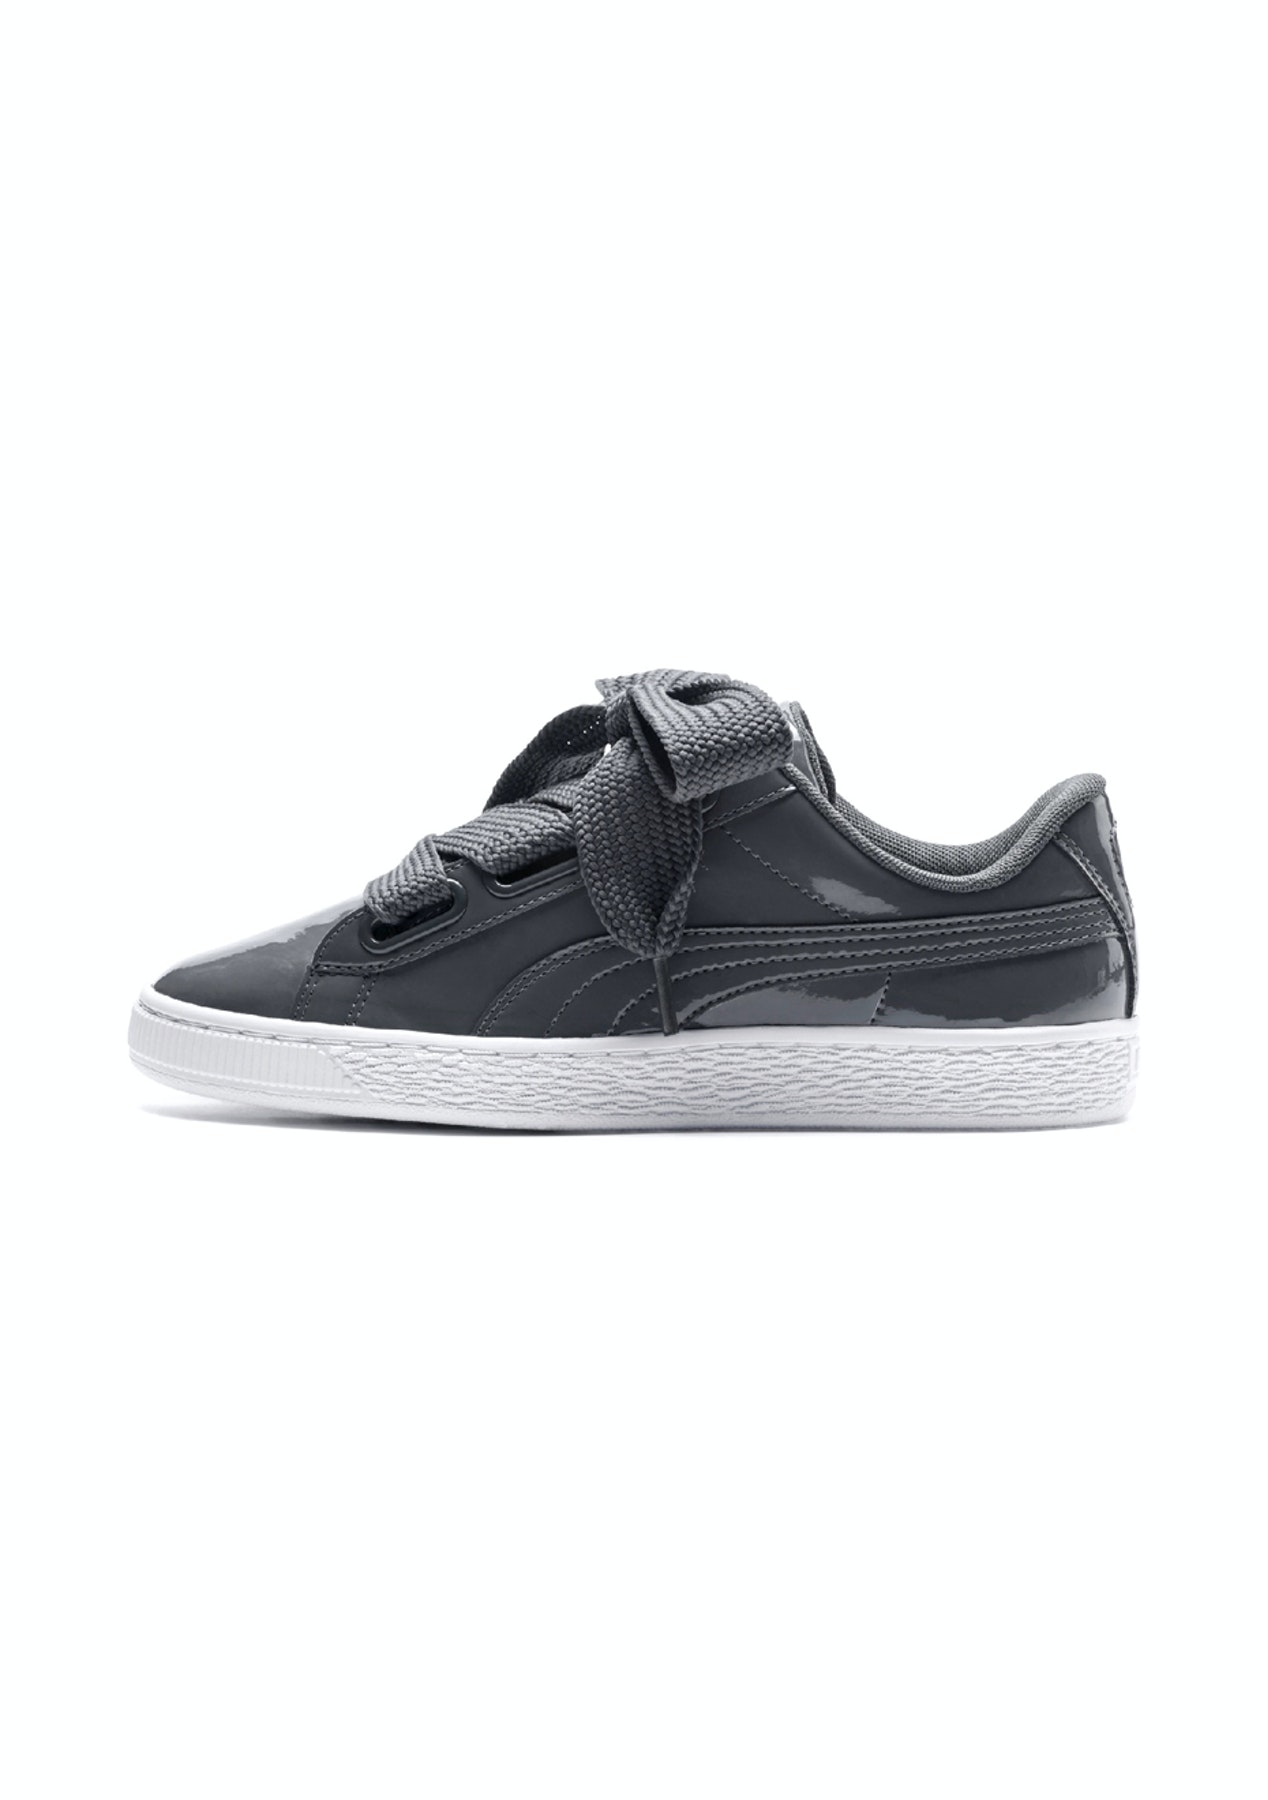 outlet store c66aa 4a576 Puma Womens - Basket Heart Patent - Iron